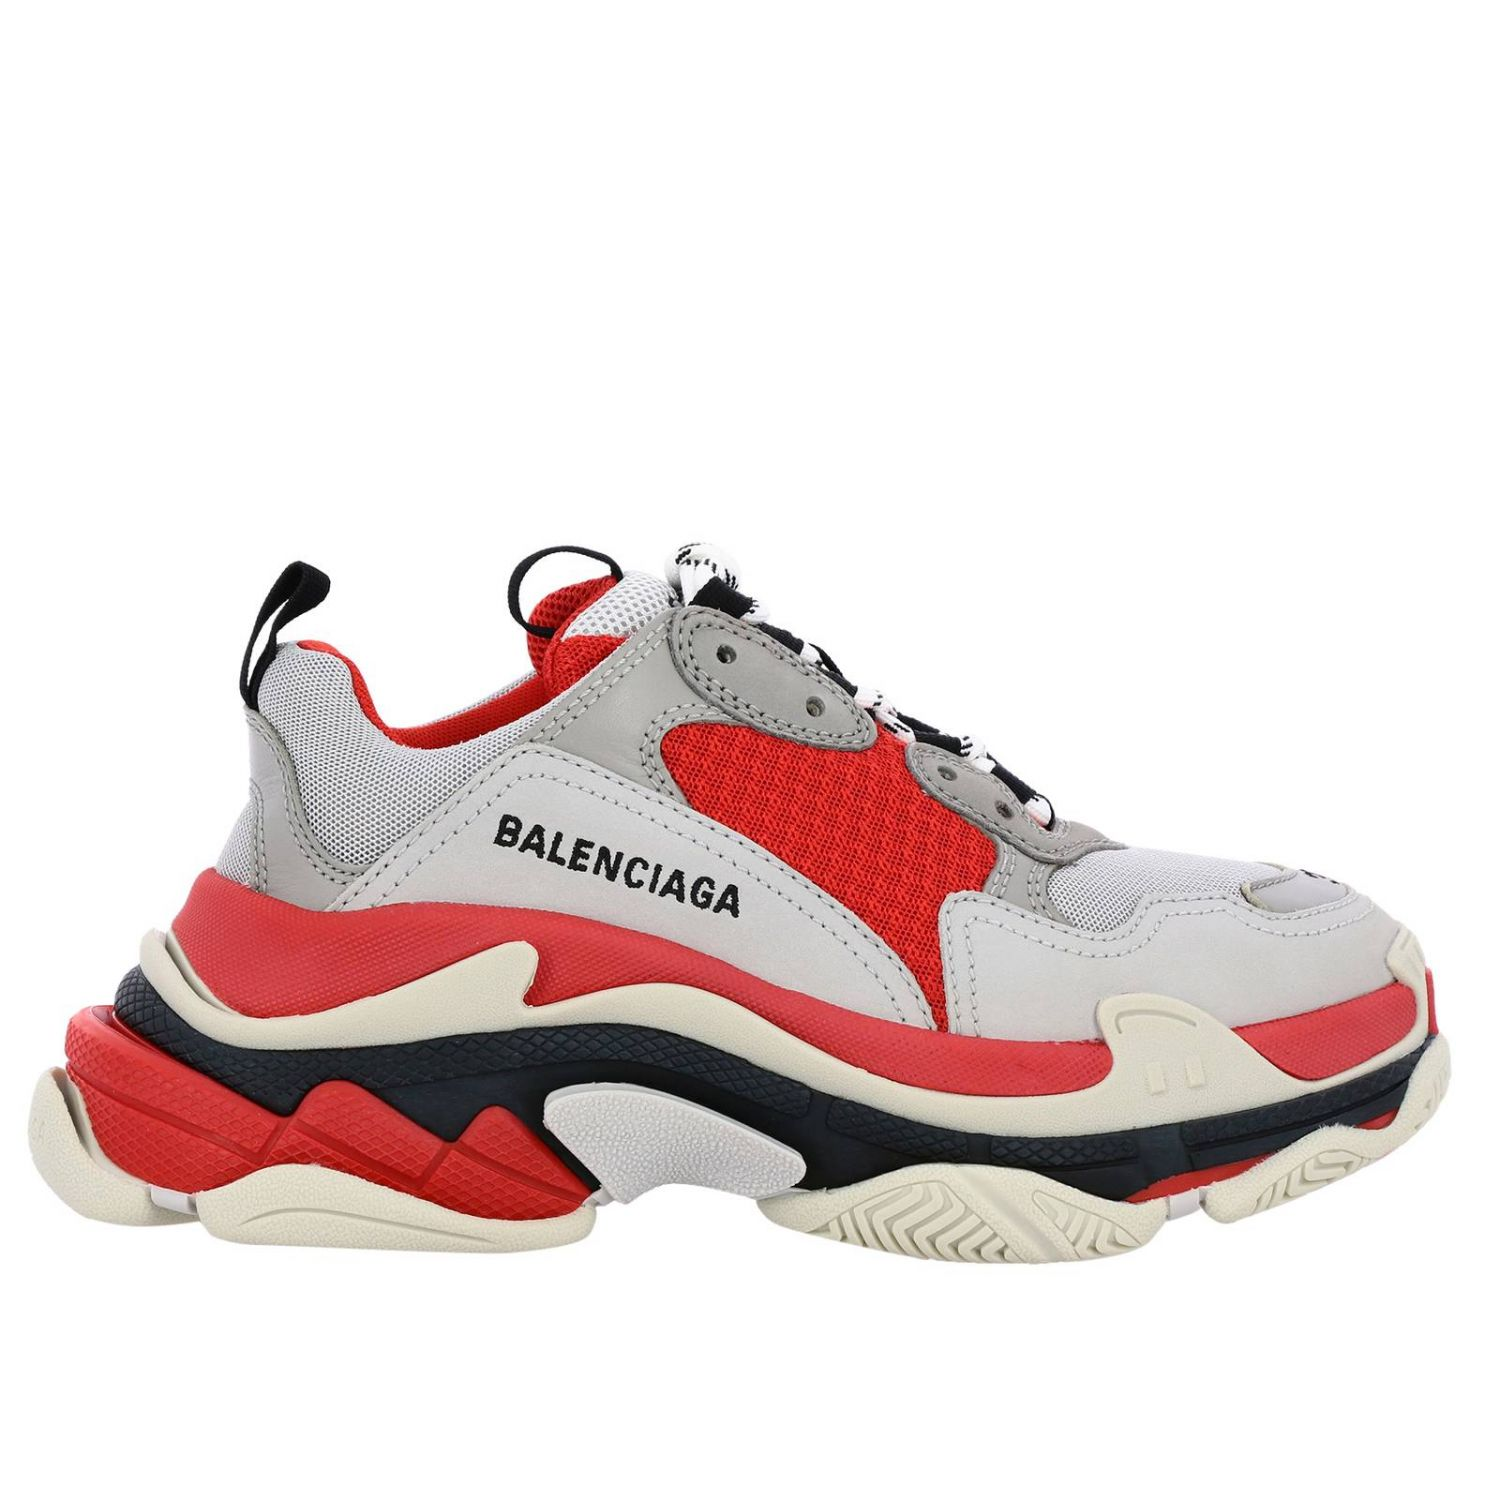 BALENCiAGA TRiPLE S YELLOW RED BLACK FROM